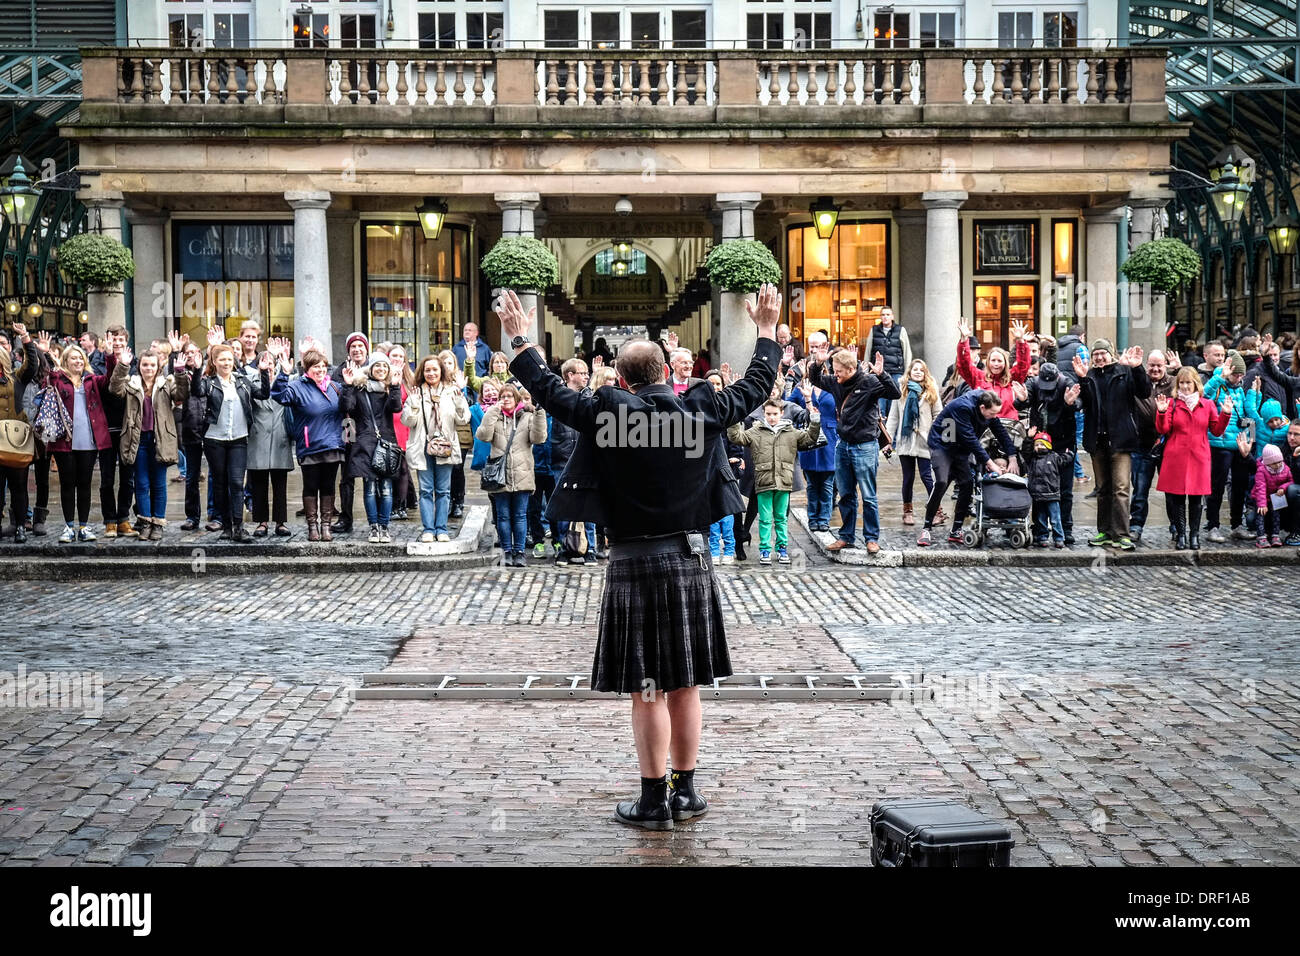 Pete Dobbing a street entertainer at Covent Garden Piazza encourages the audience to participate in his performance. - Stock Image